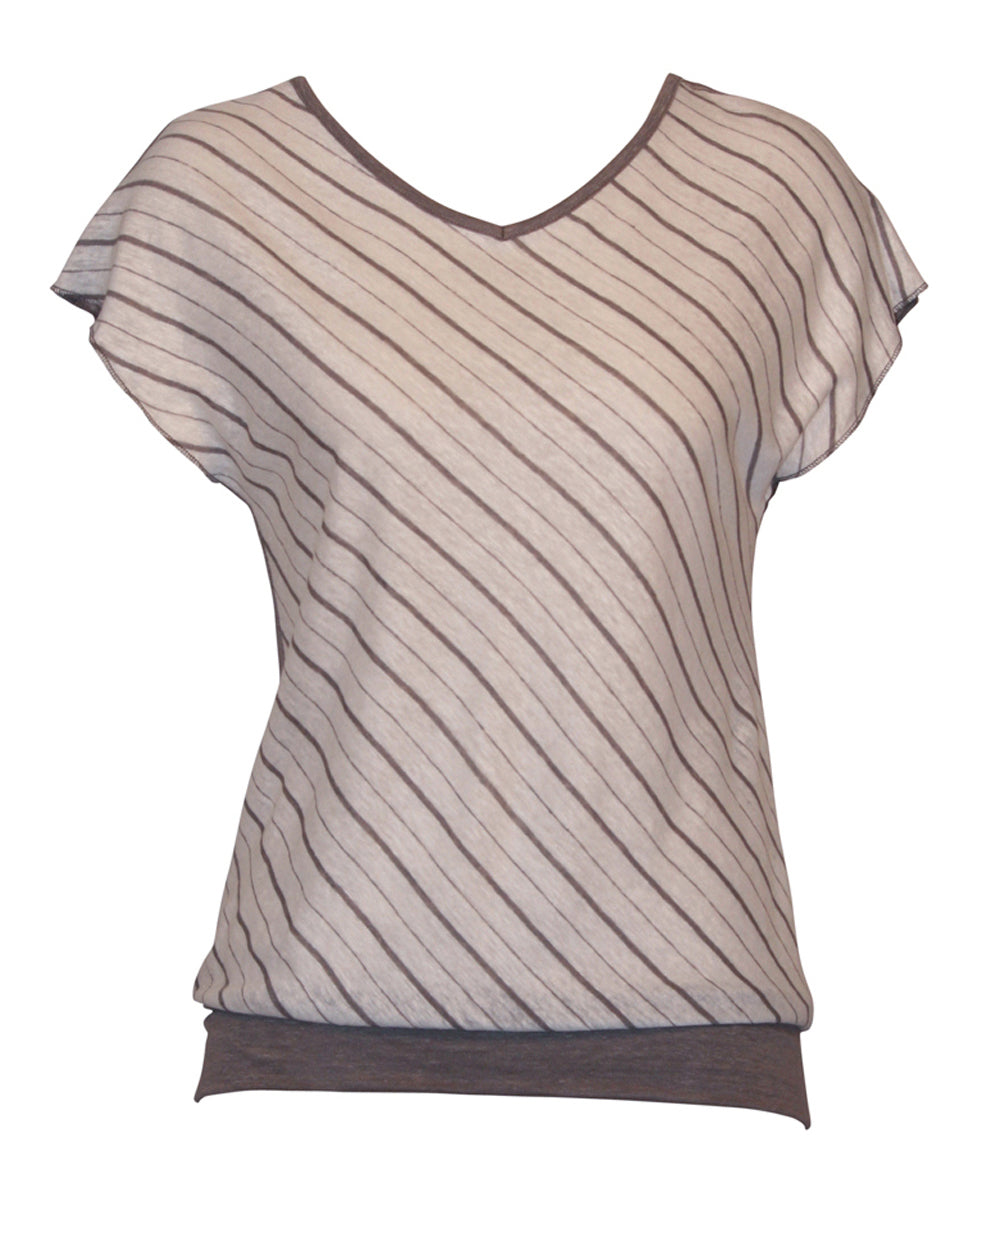 candy cane linen top in latte